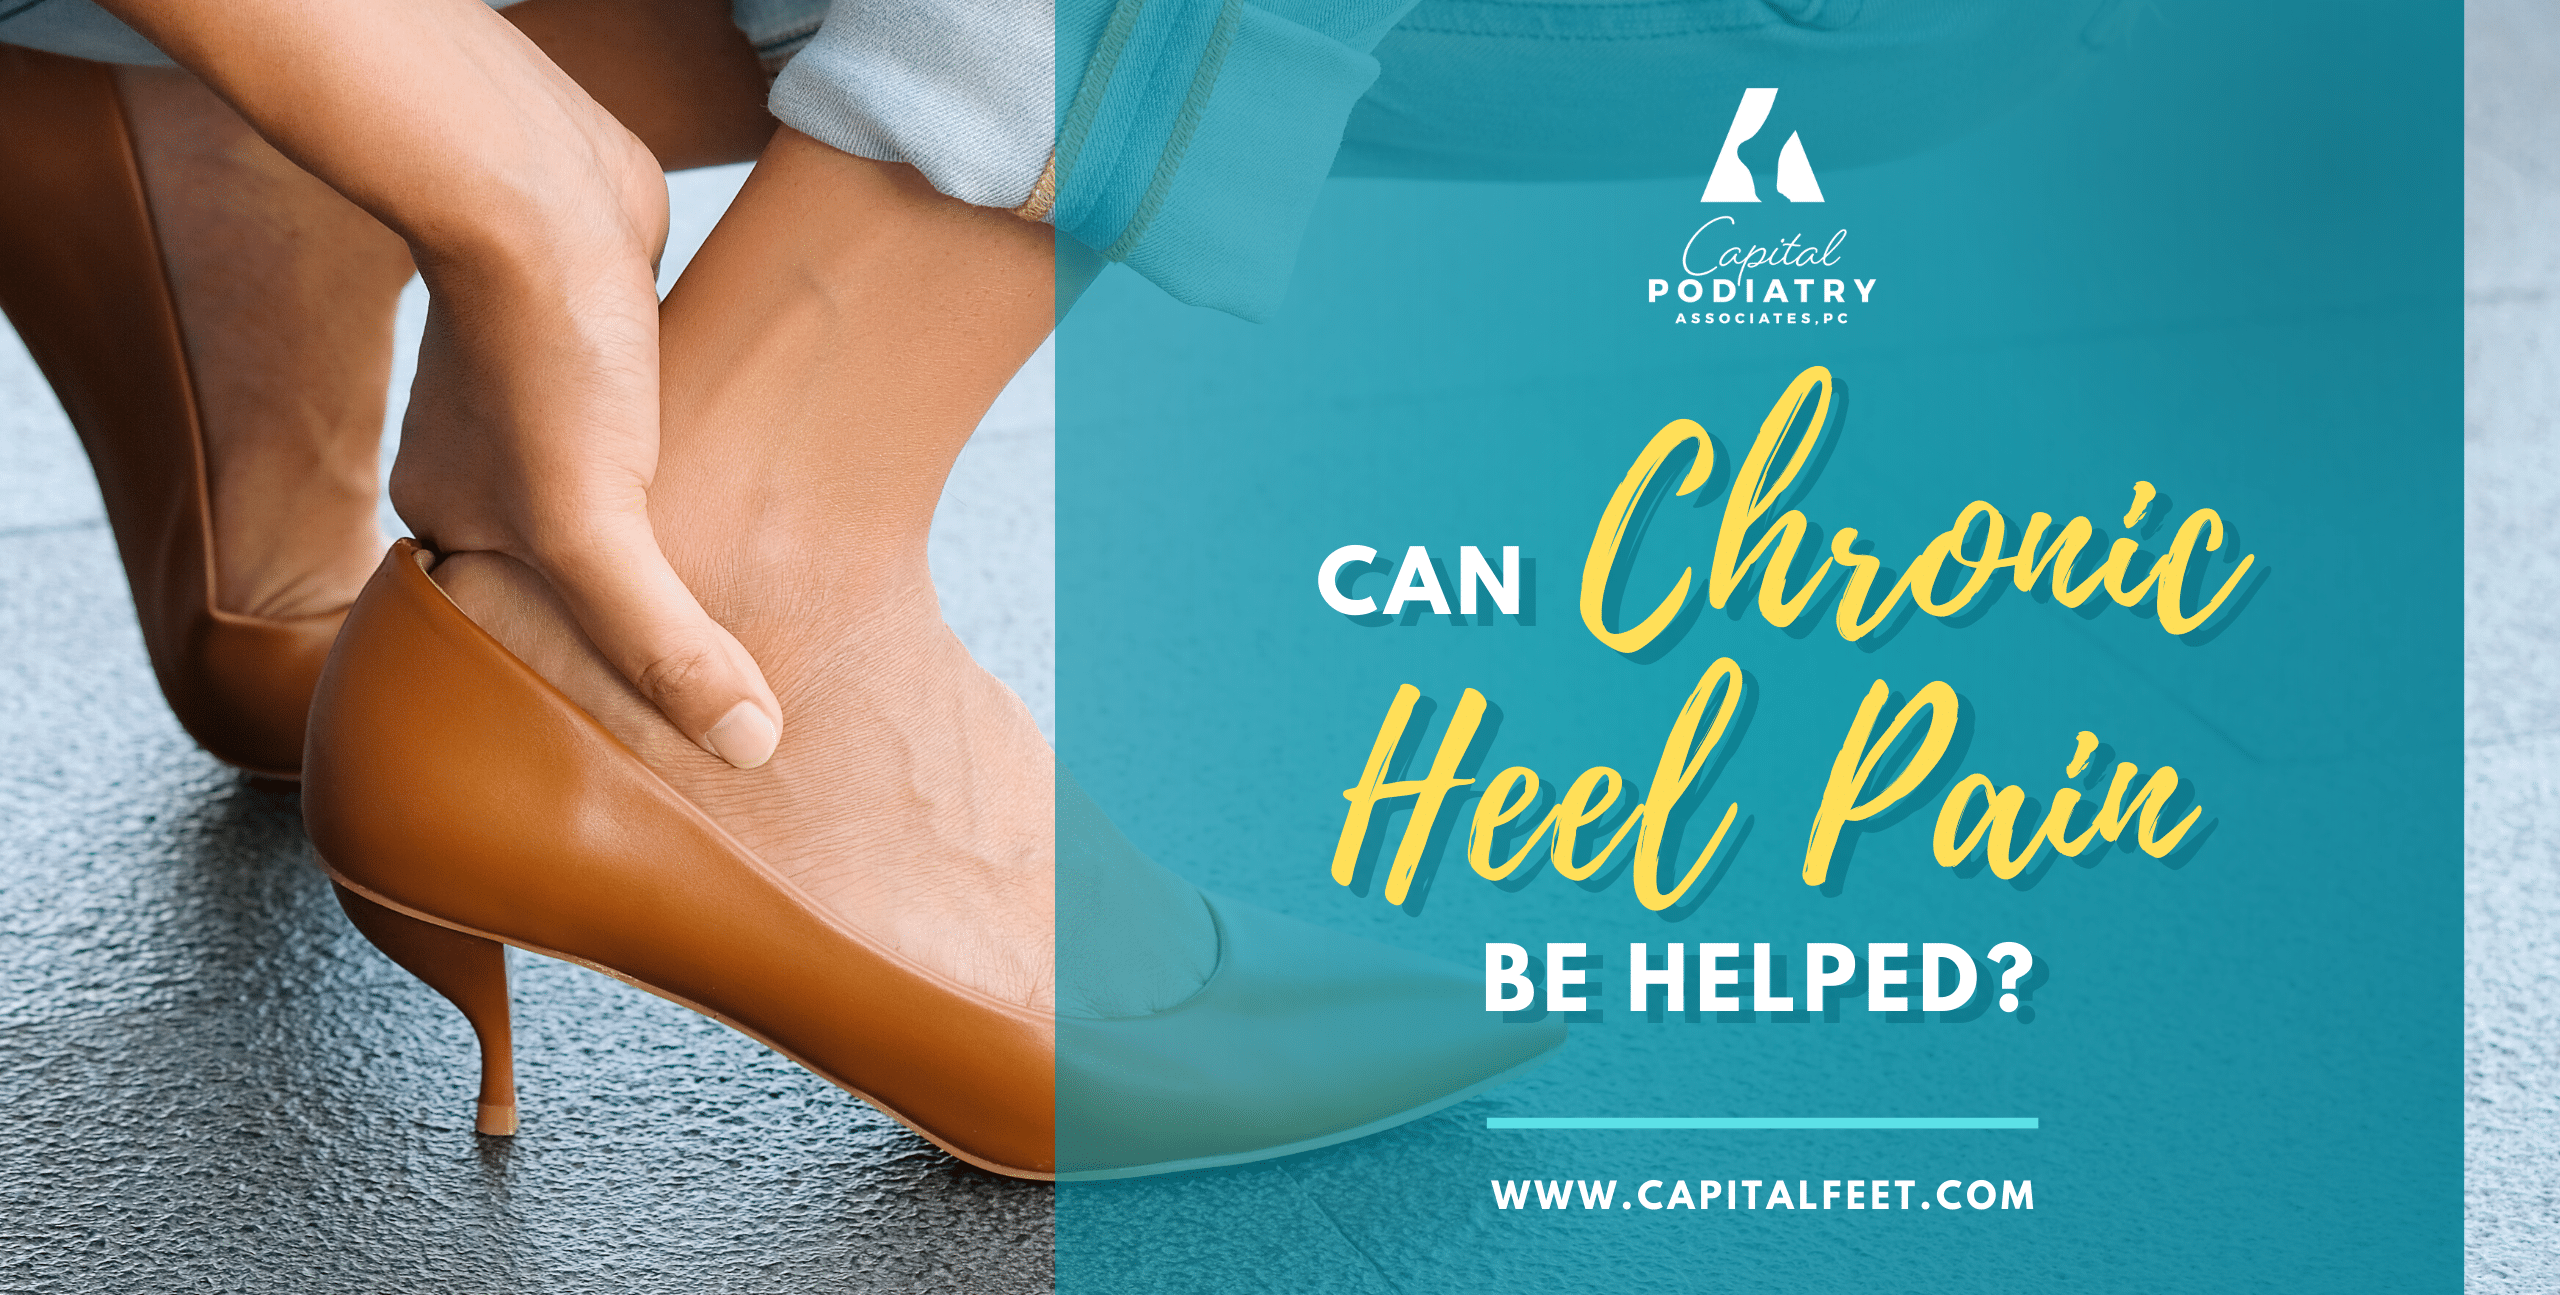 Can chronic heel pain be helped?